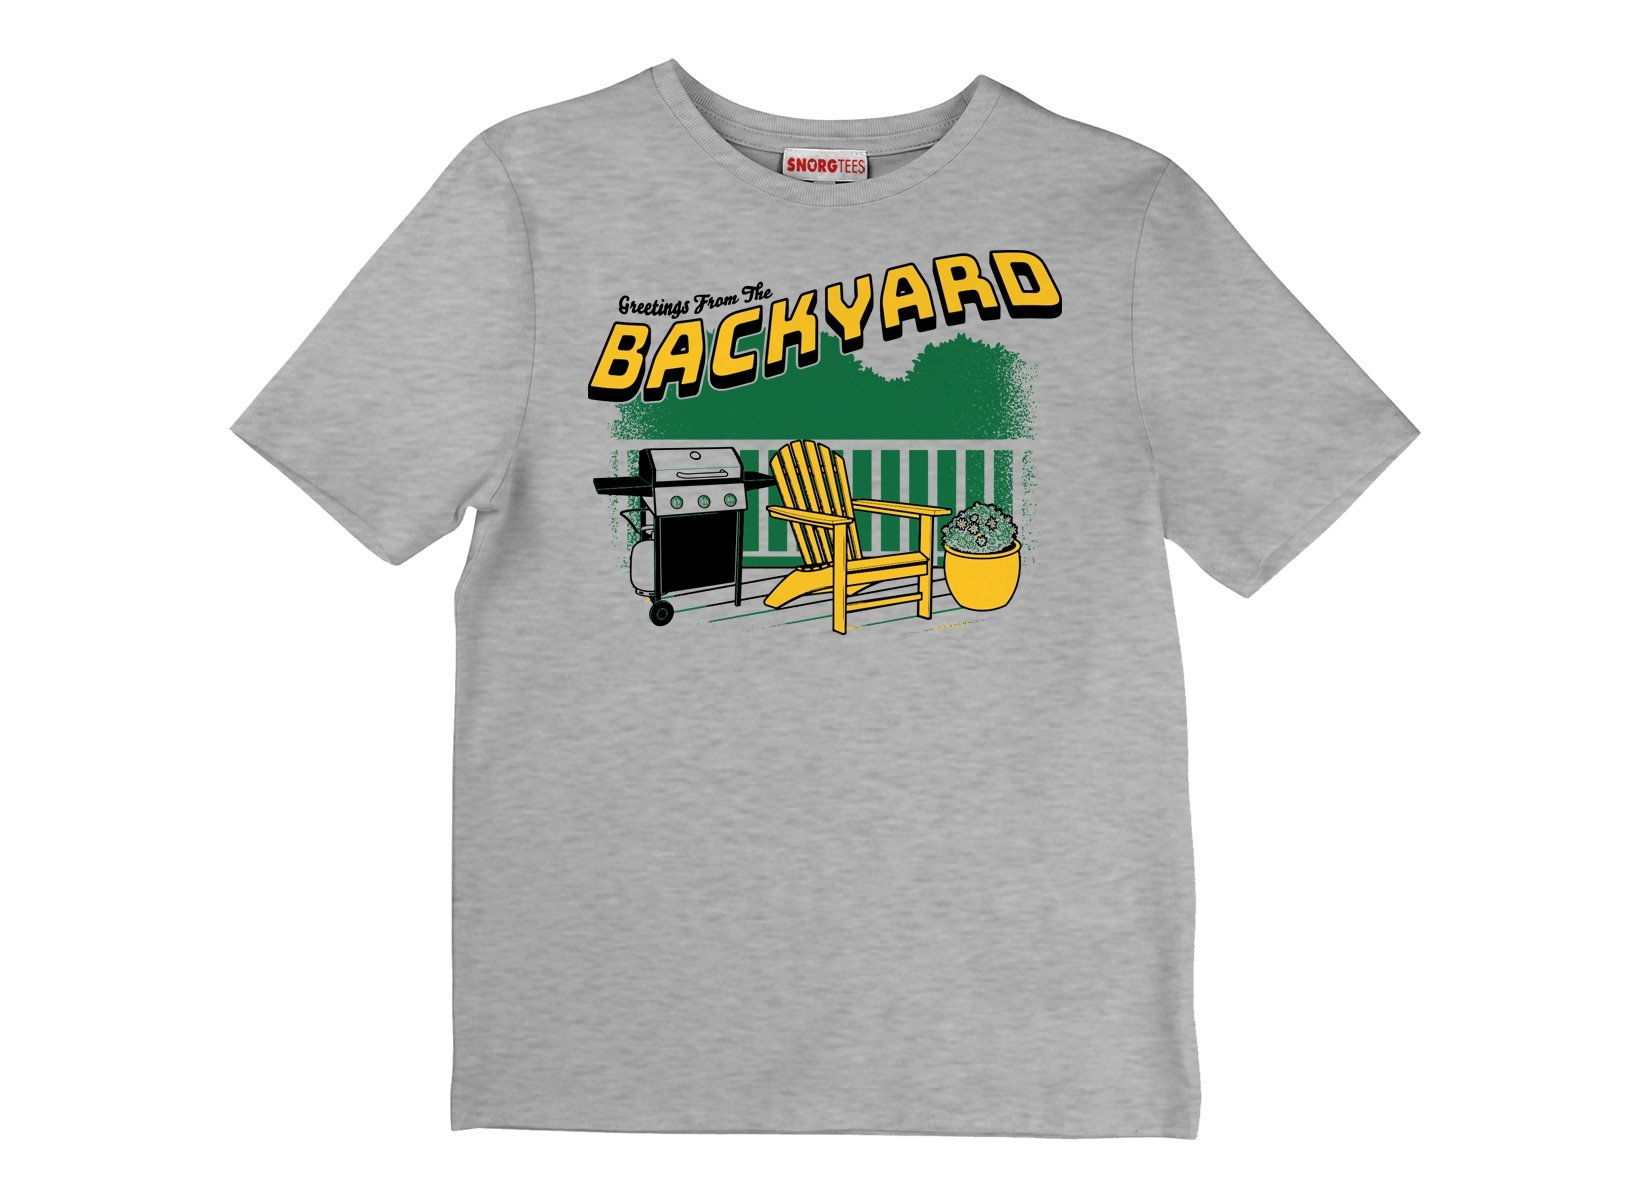 Greetings From The Backyard on Kids T-Shirt